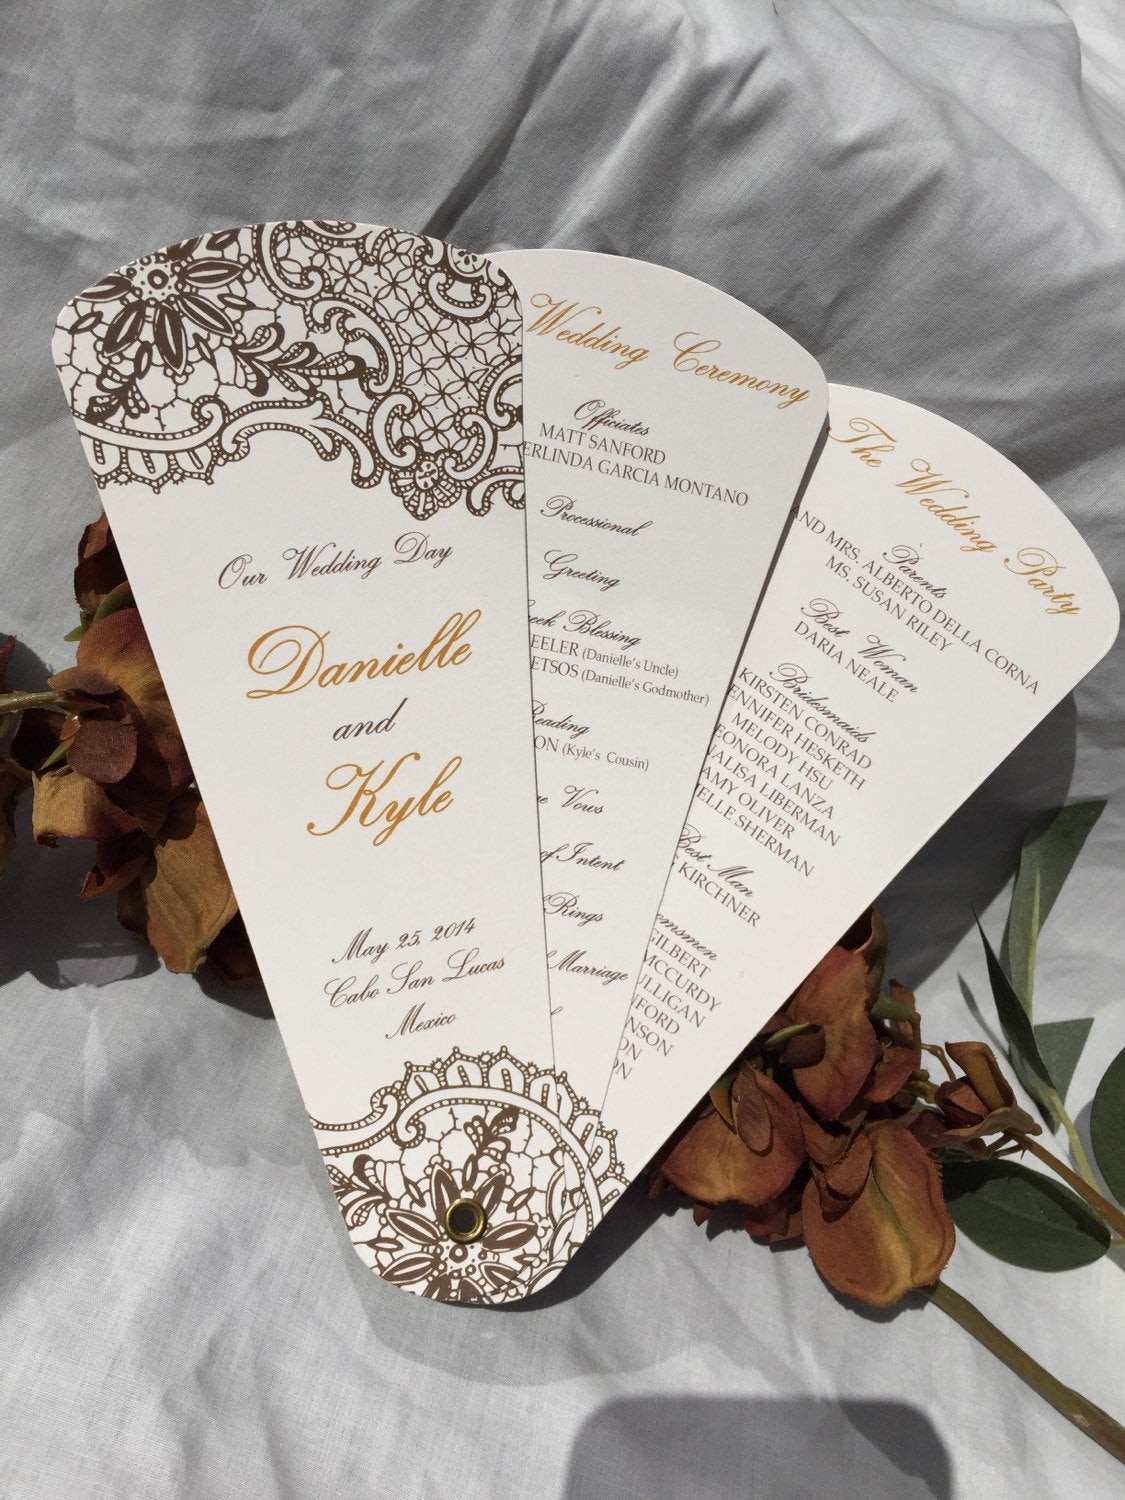 Best ideas about DIY Wedding Programs Fans . Save or Pin Wedding Program Fans Petal Fan Programs Fan Programs Now.